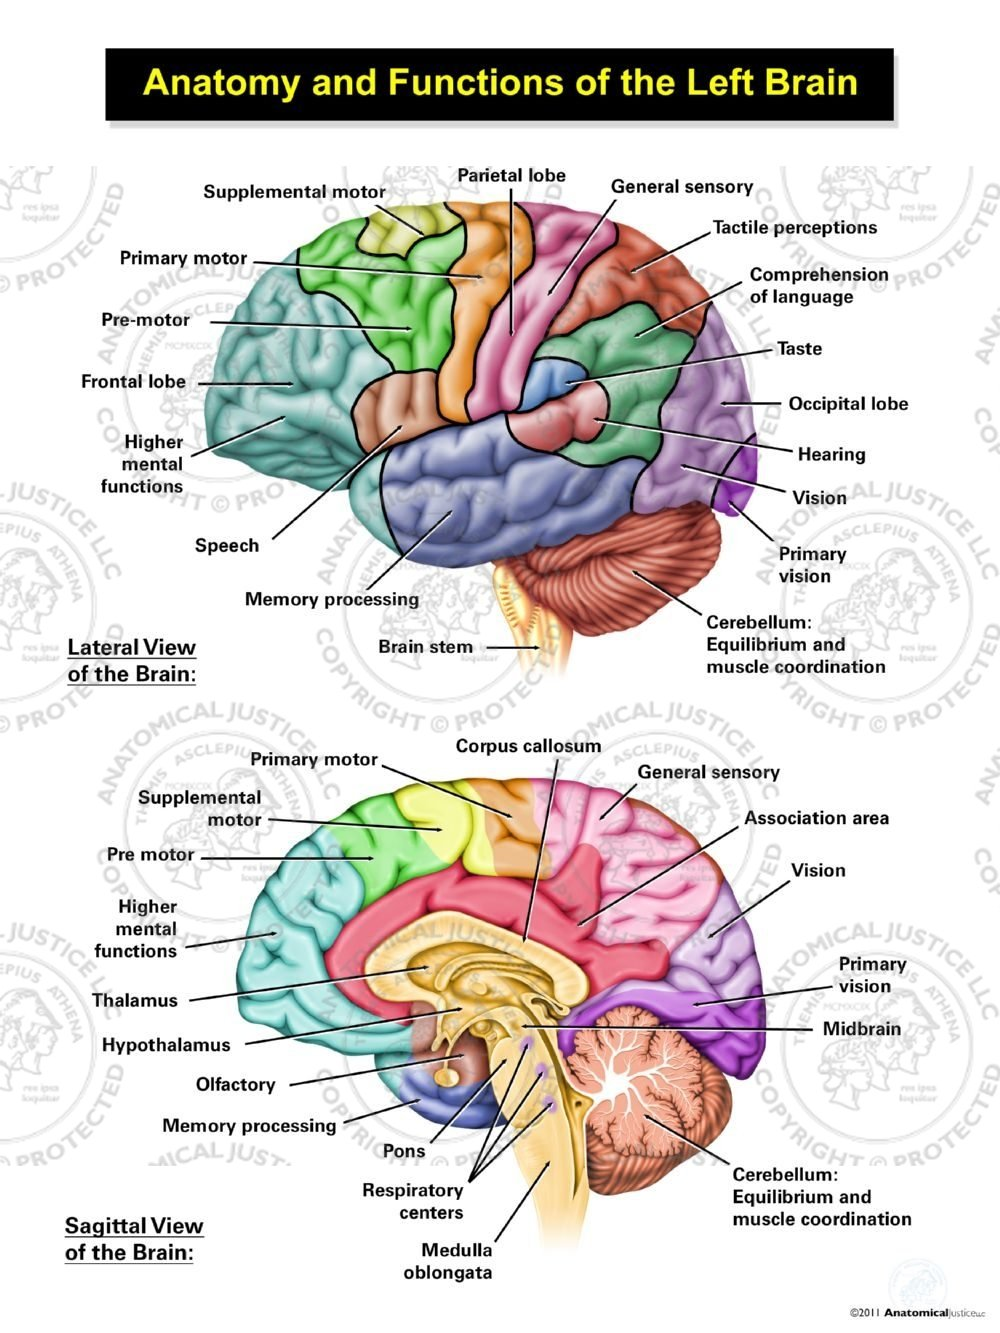 Anatomy And Functions Of The Left Brain Illustration